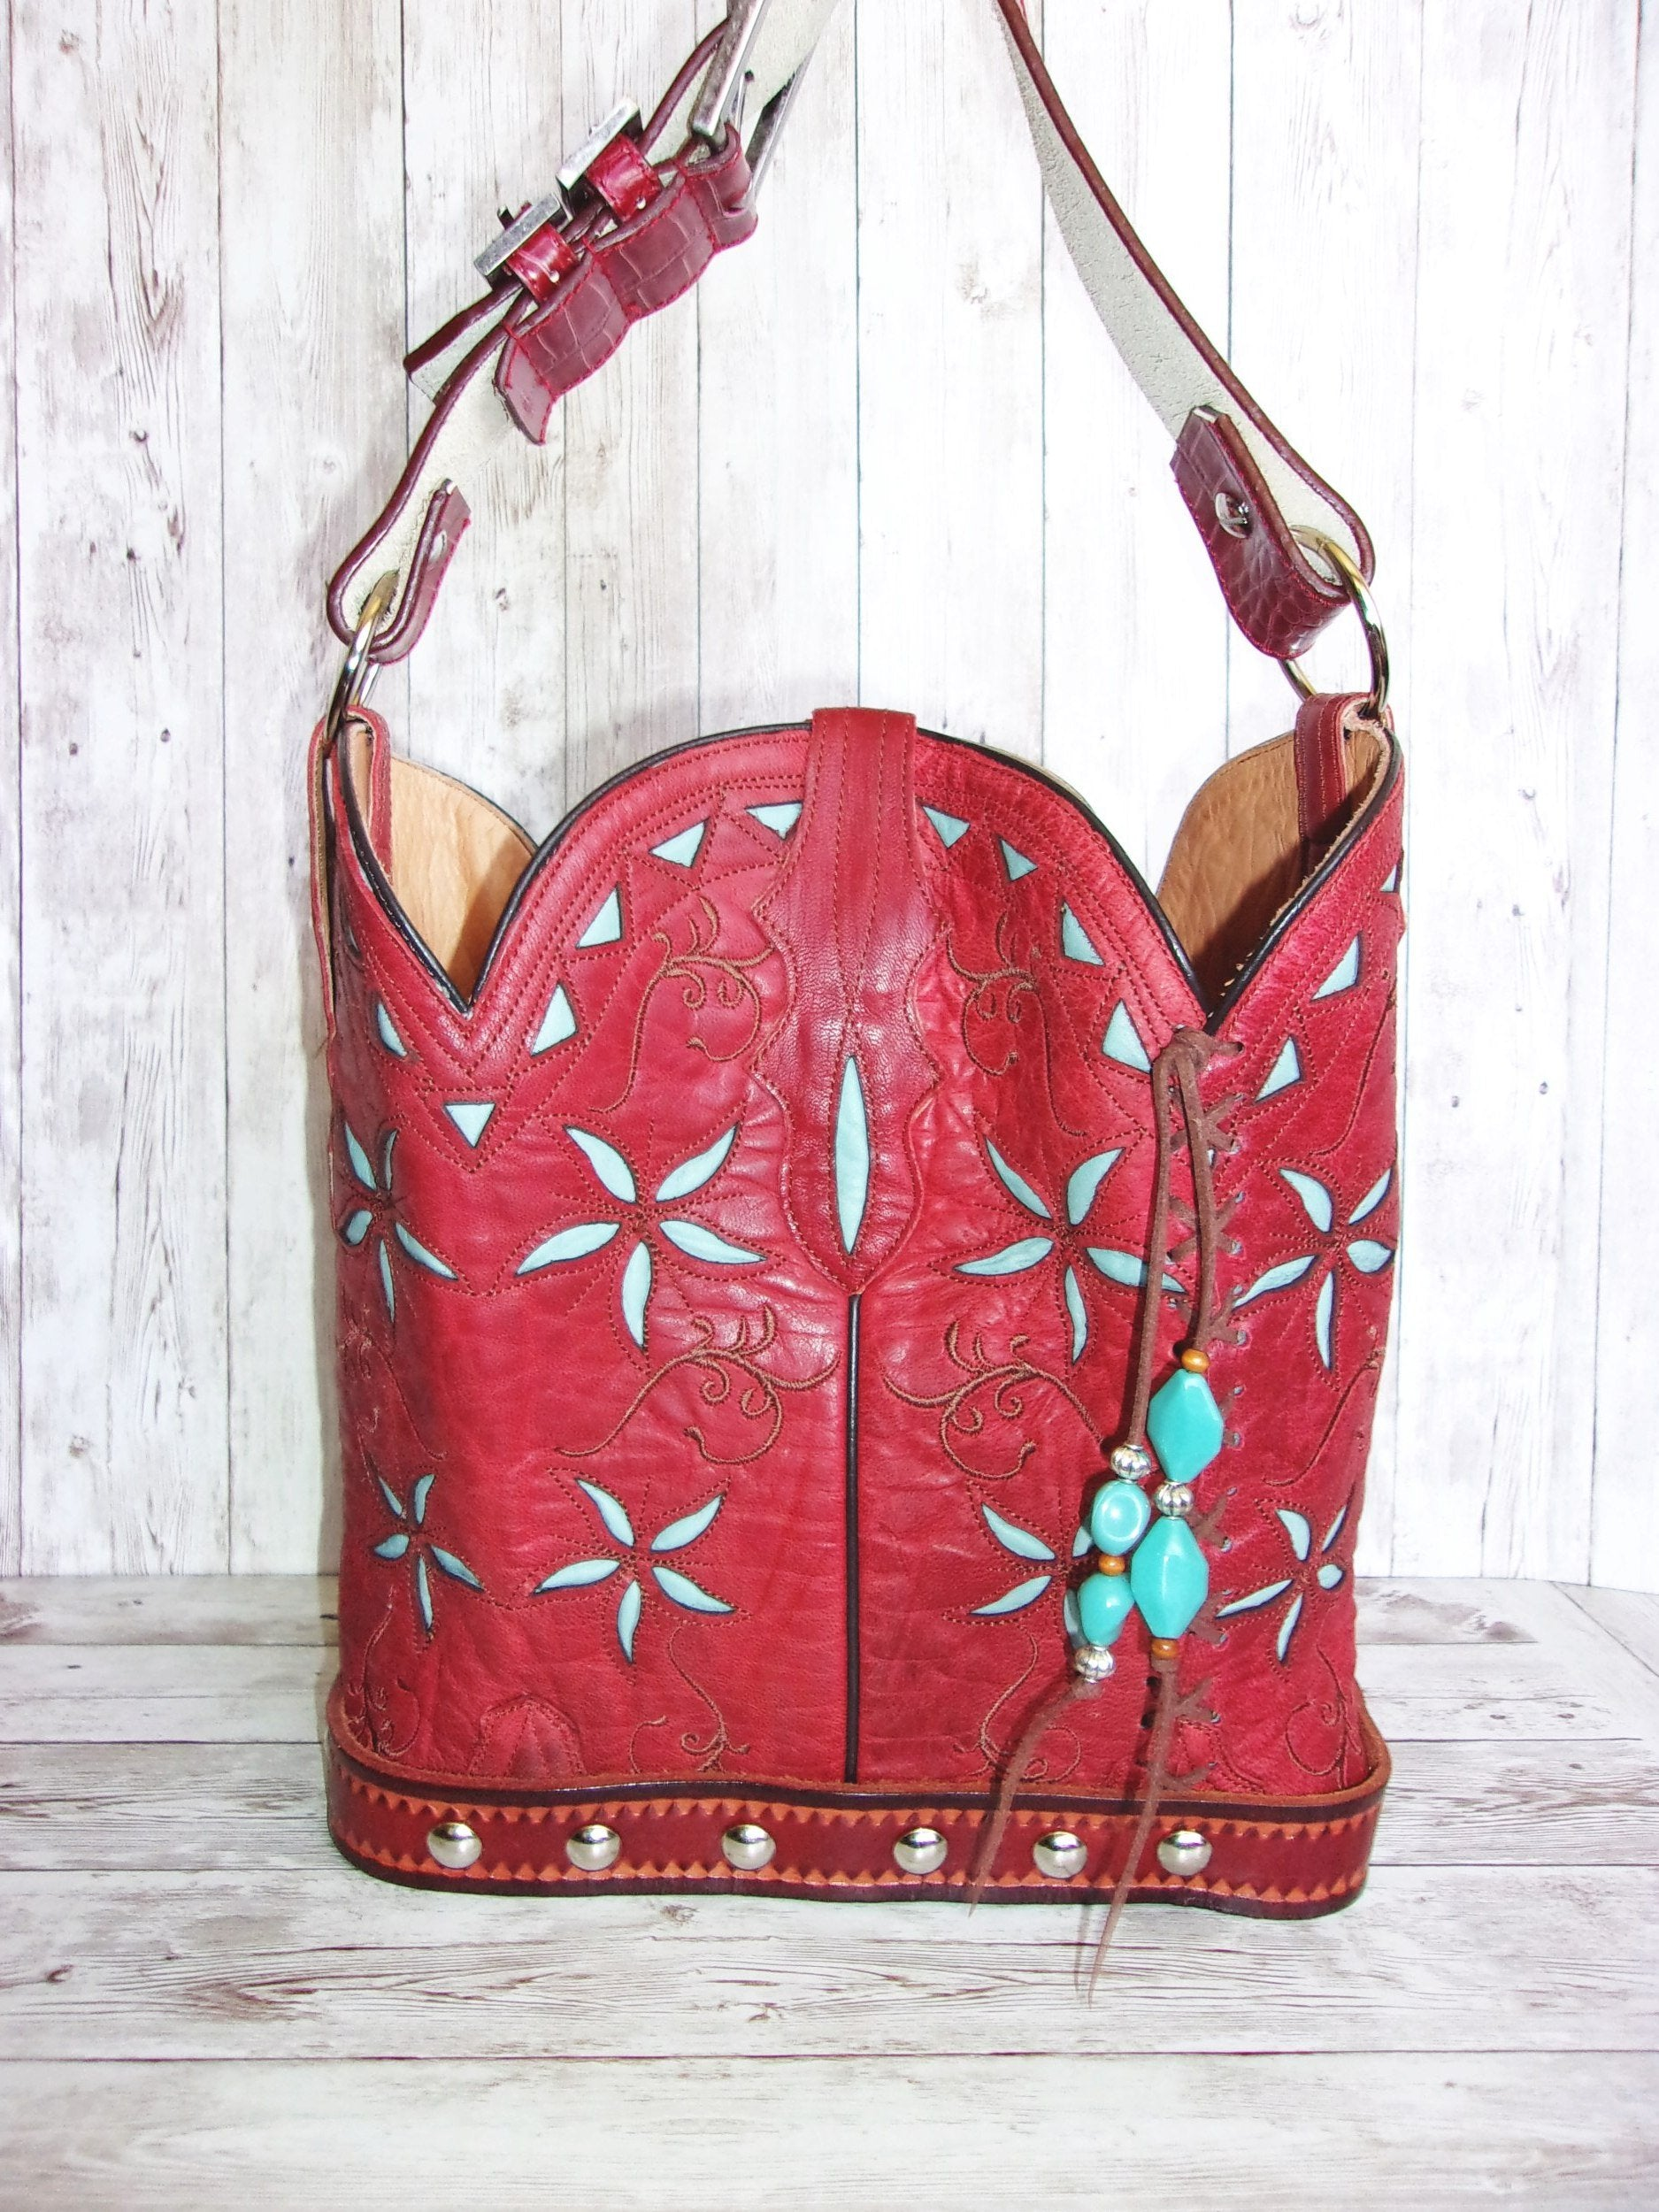 Cowboy Boot Purse Bucket Bag BK19 - Cowboy Boot Purses by Chris Thompson for Distinctive Western Fashion